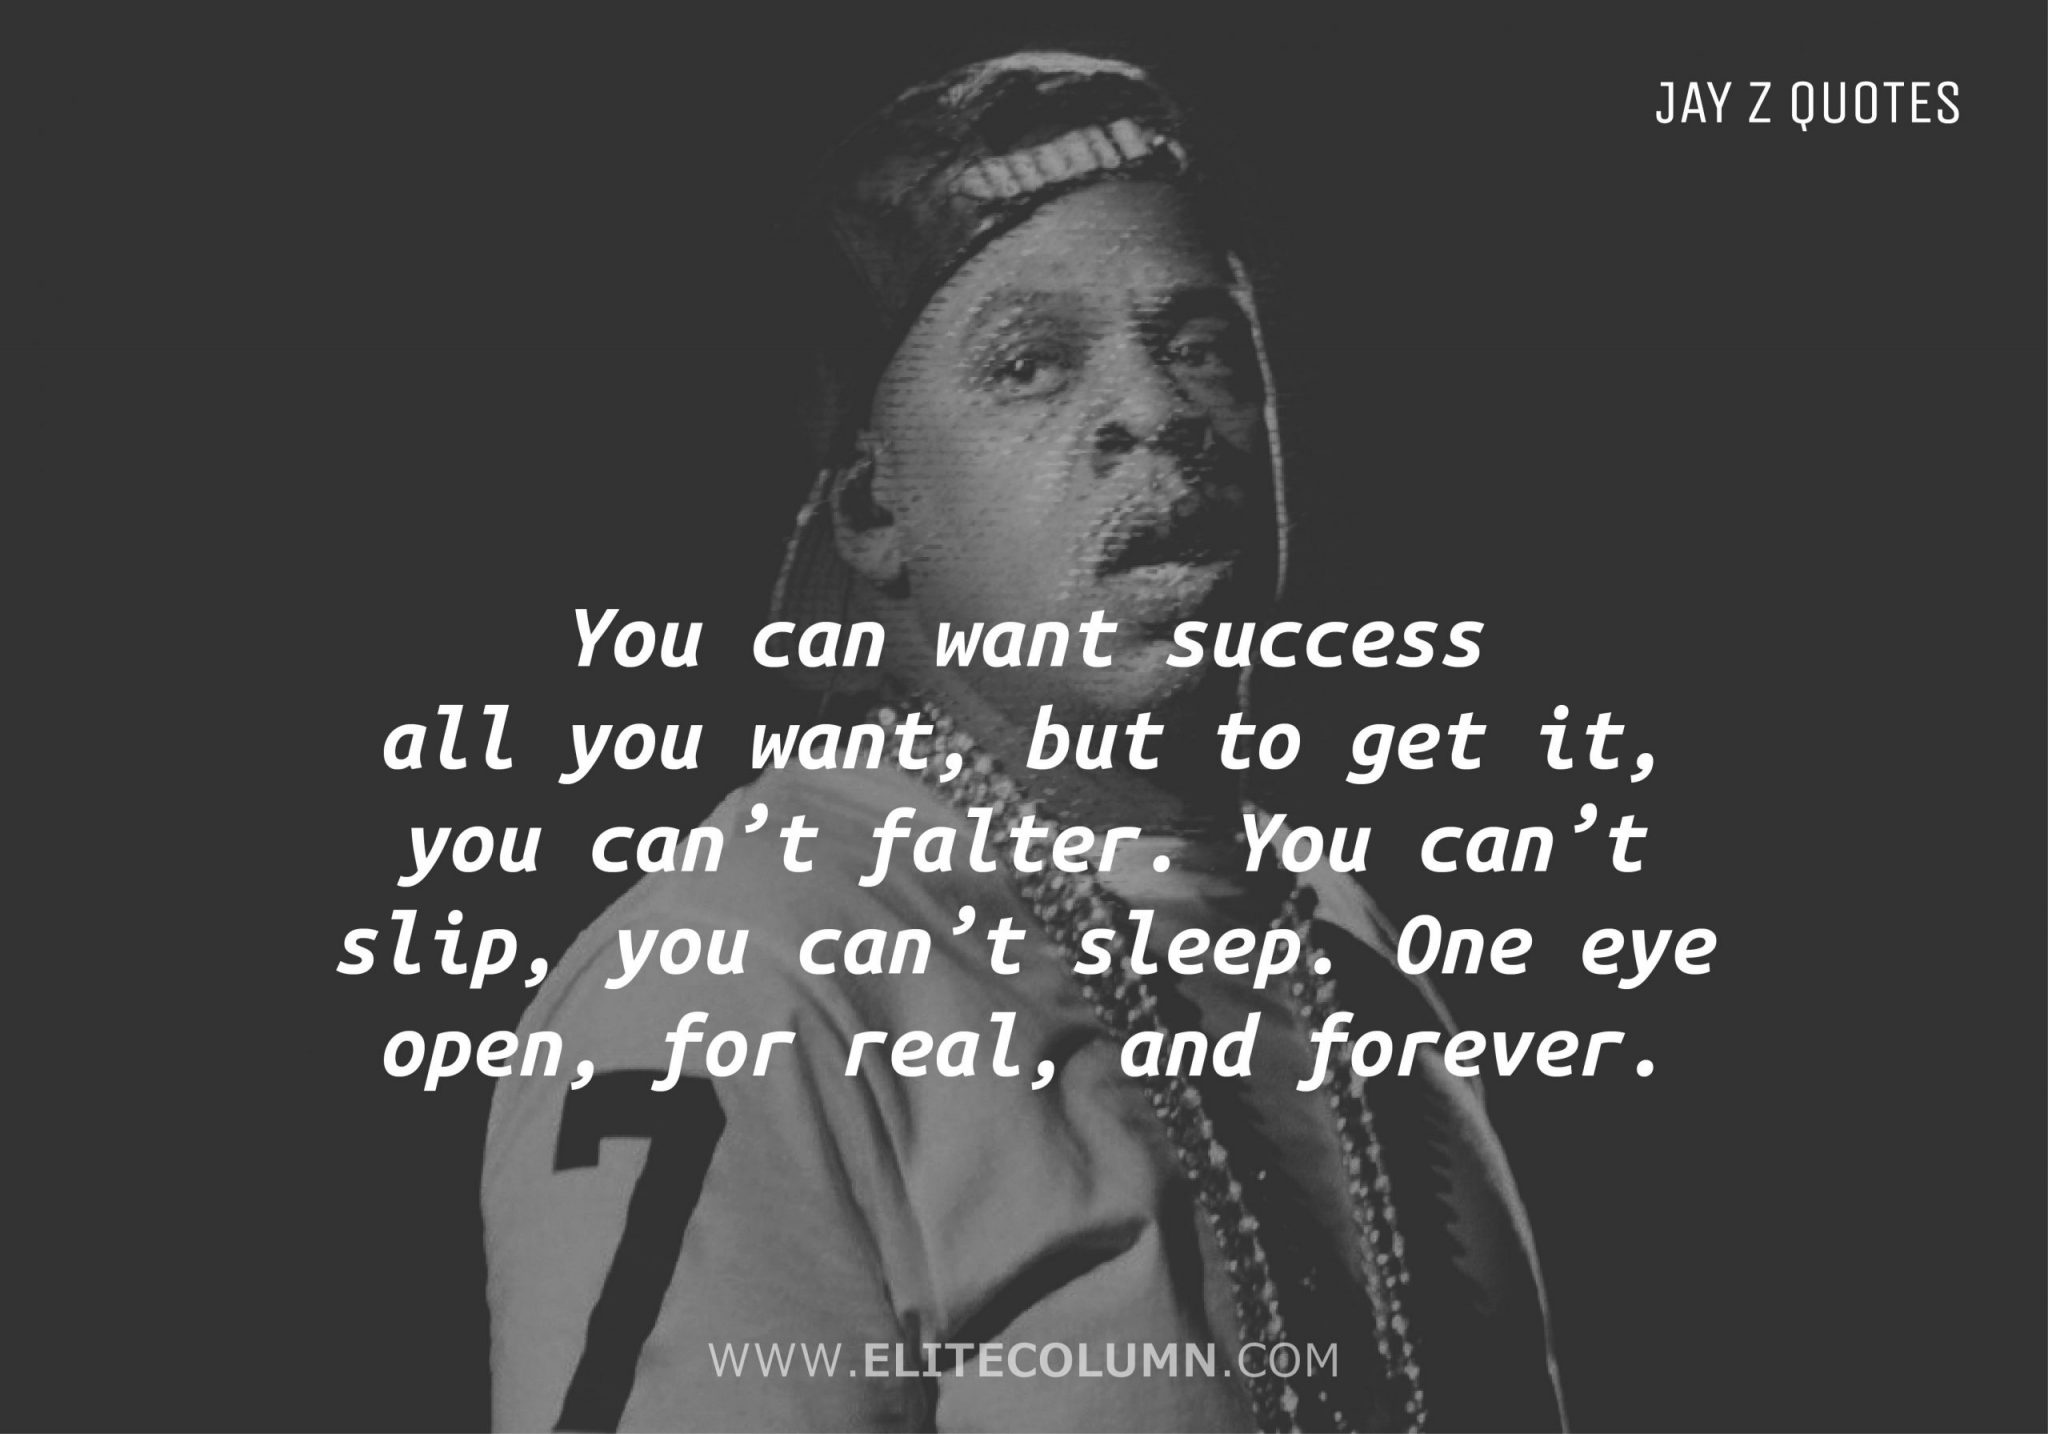 Jay Z Quotes (4)